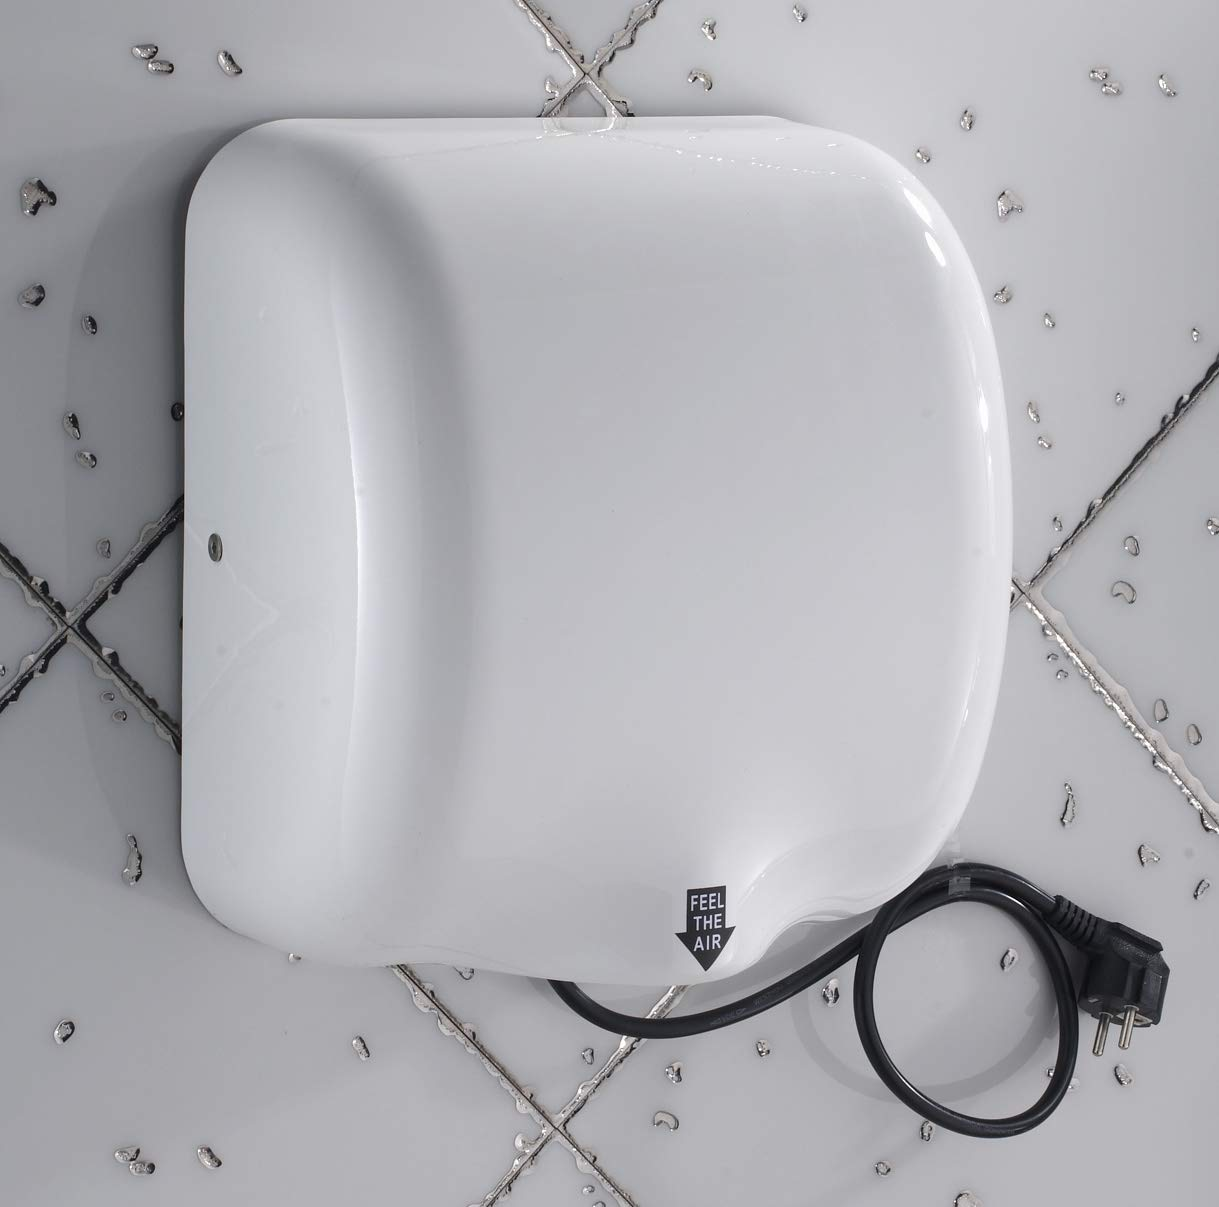 Mophorn 1800W Automatic Hand Dryer 110V Stainless Steel Commercial Hand Dryer Electric Hand Dryer for Hotel Home Bathrooms Air Hand Dryers White (White)